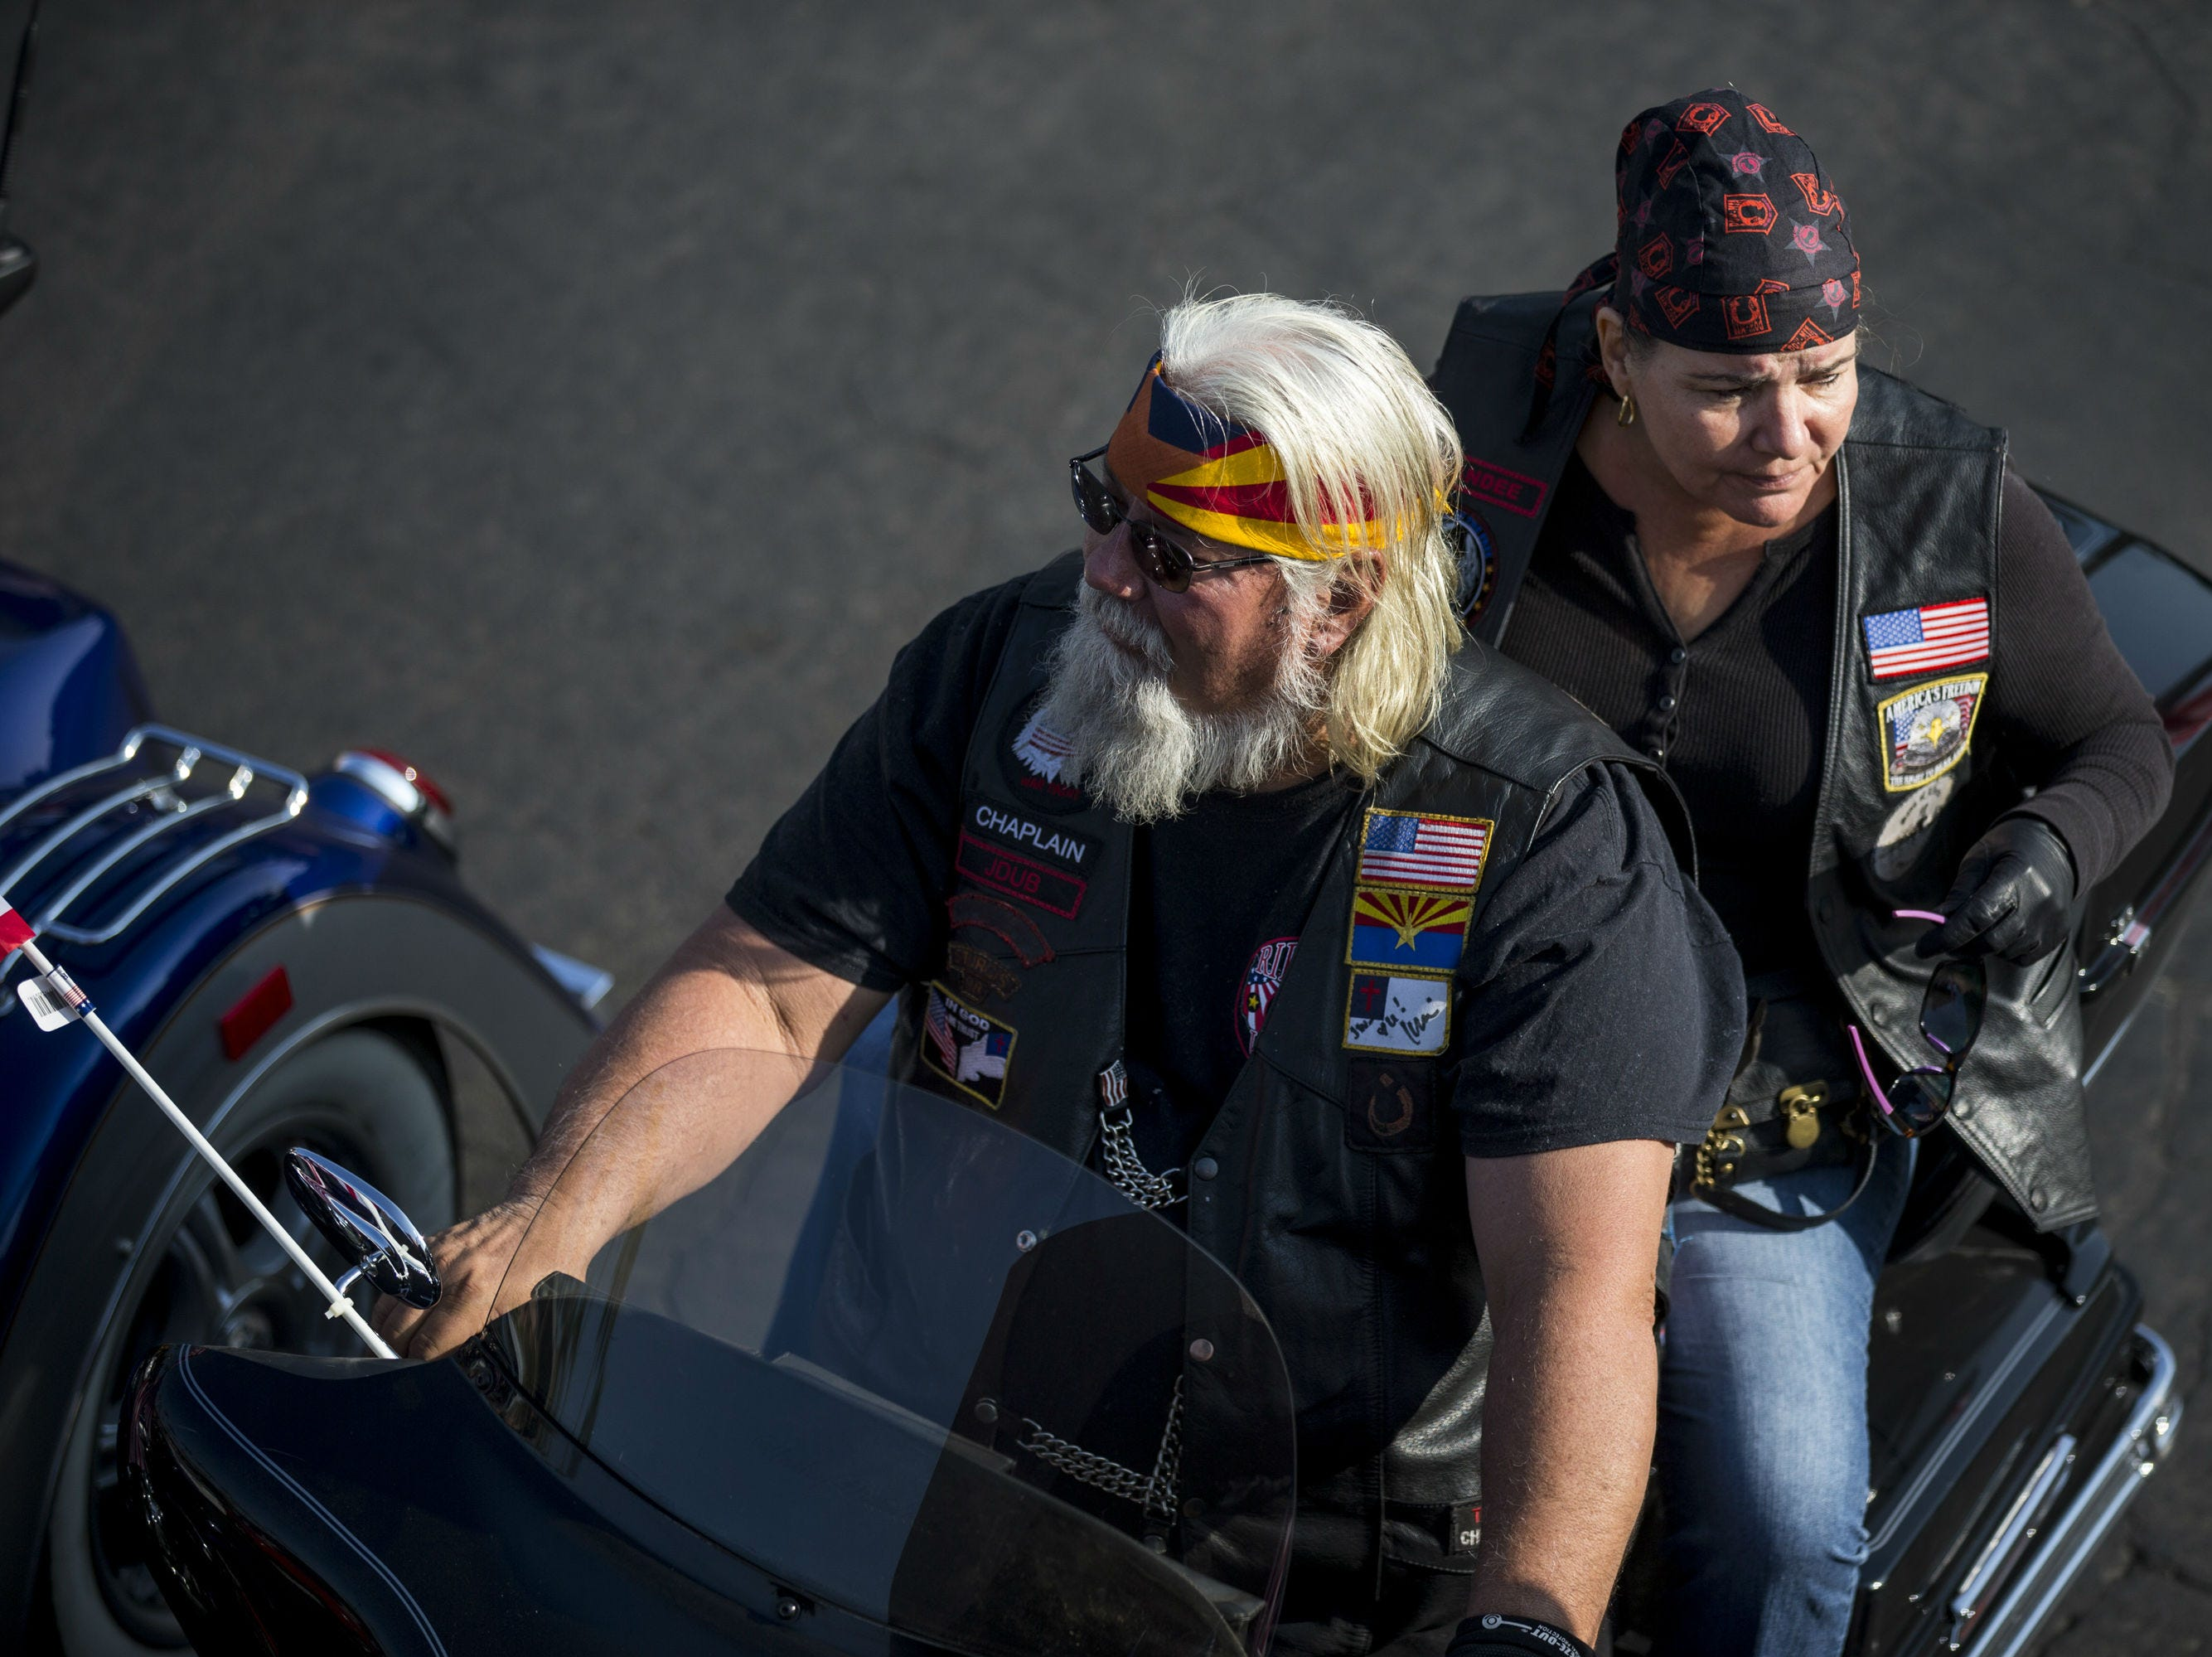 Jim Williams and Dandee, who only wanted to be identified by her first name, sit on their motorcycle before the Veterans Day Parade on Nov. 11, 2018, in Tempe, Ariz.